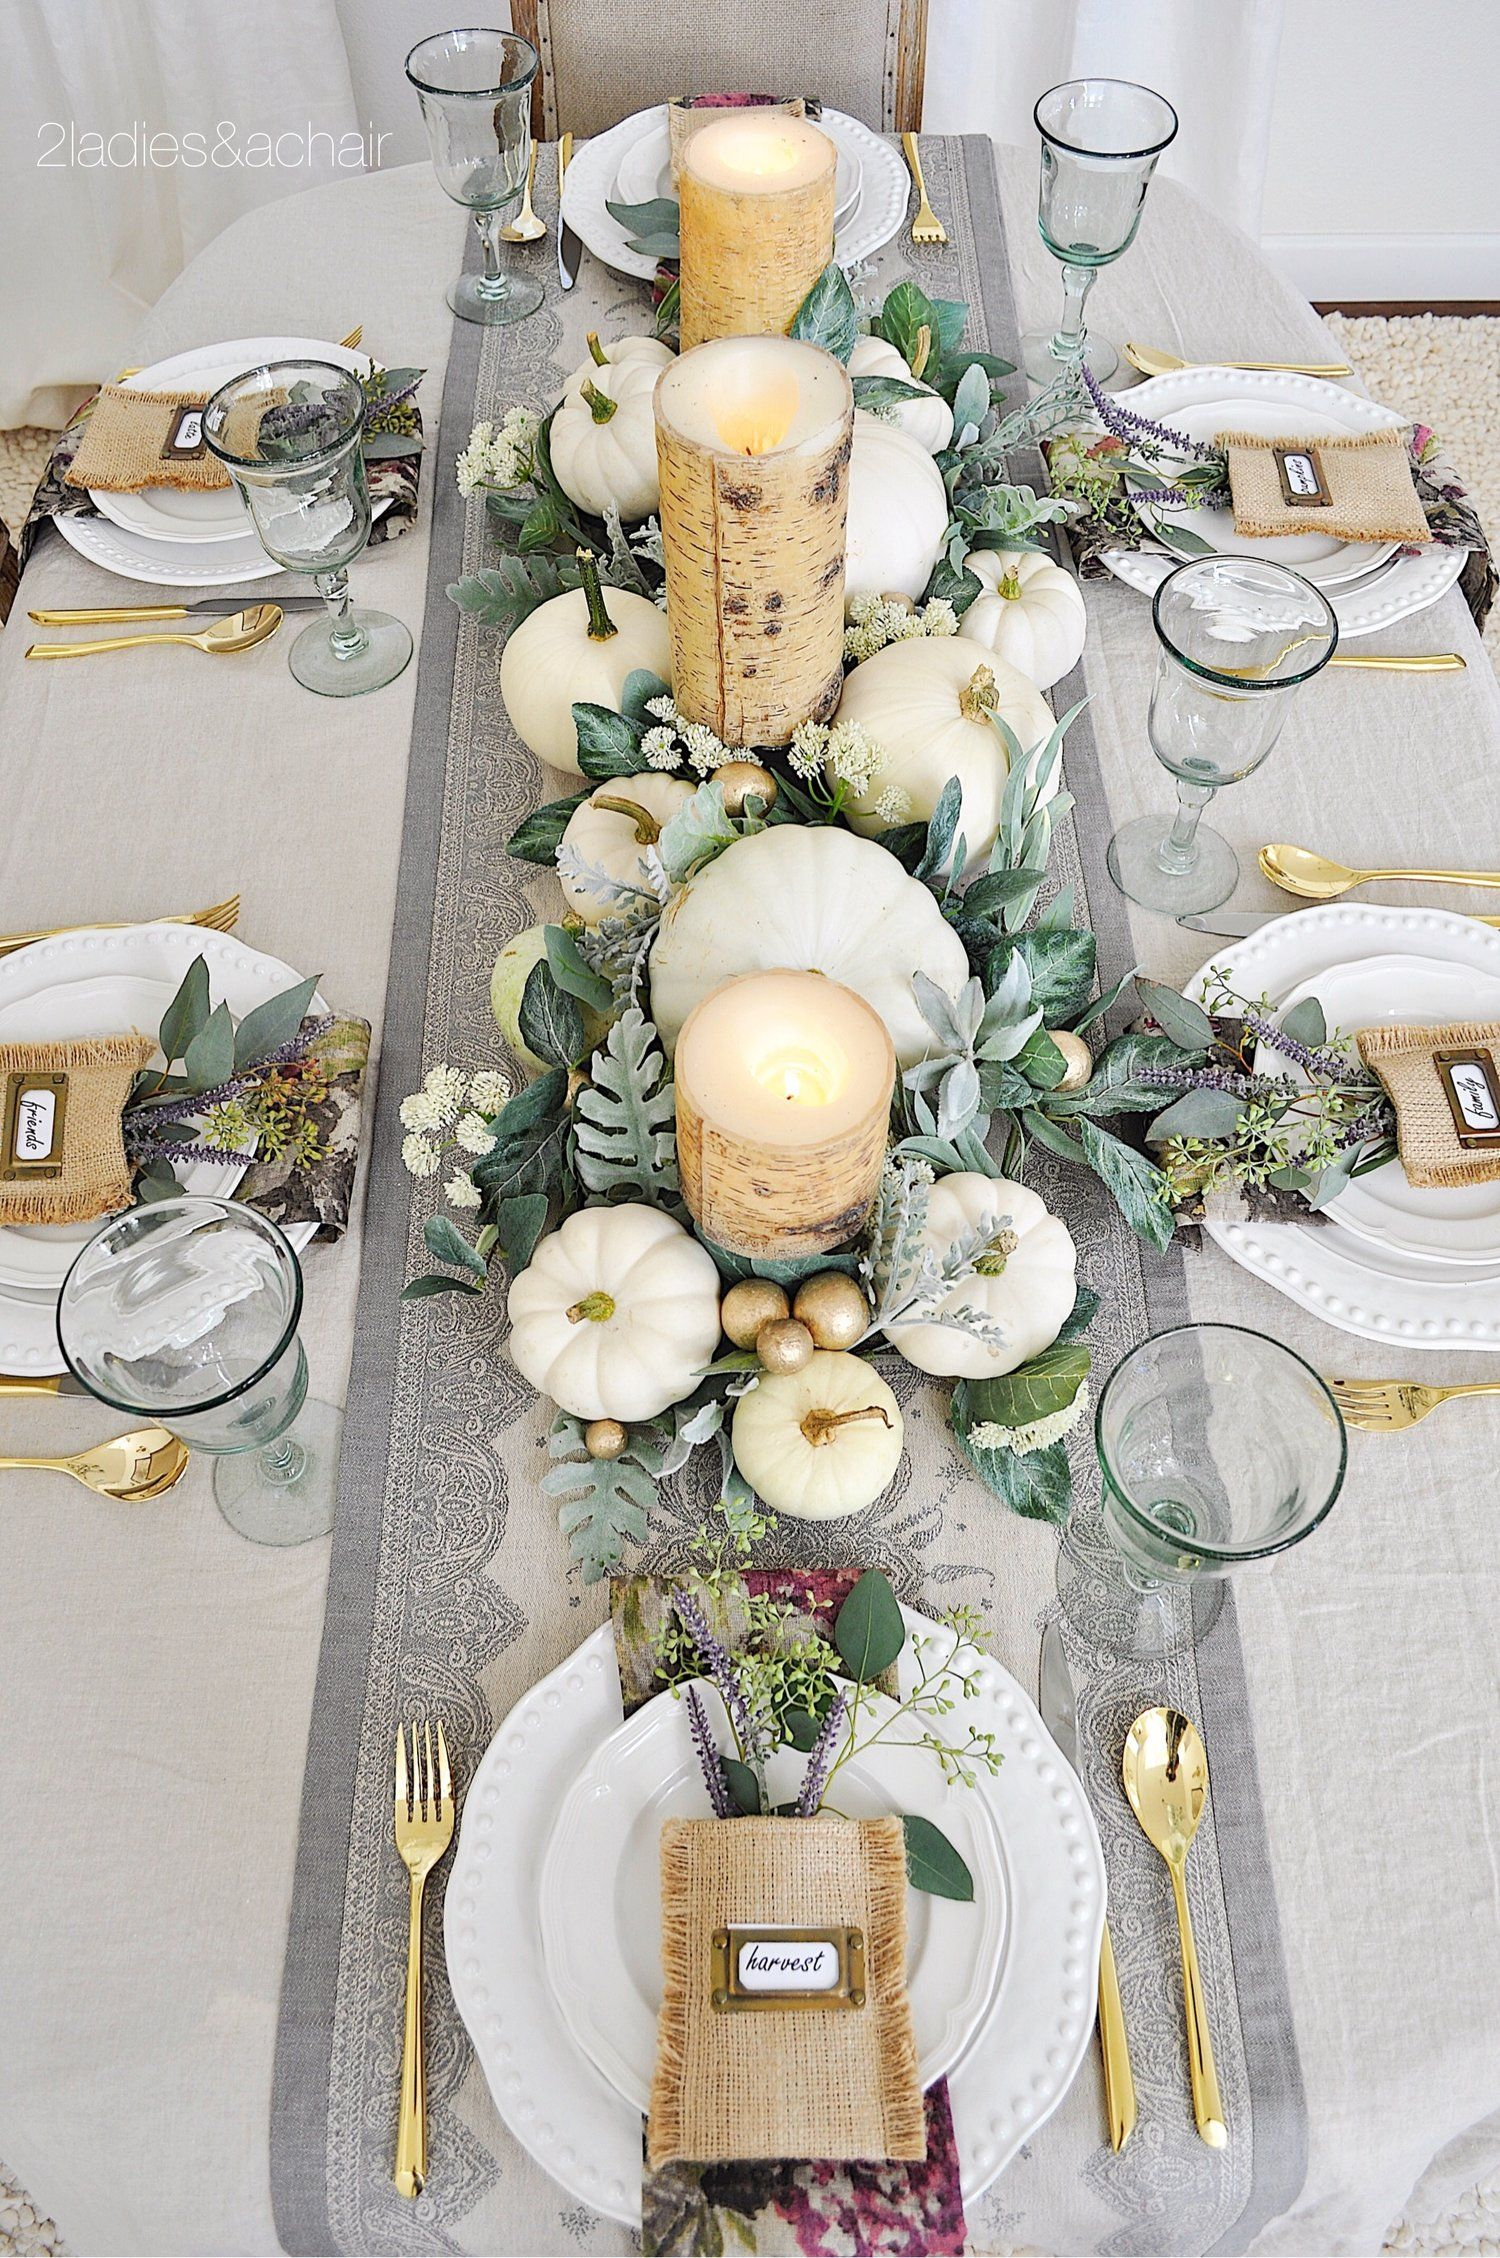 A Simple Beautiful Way to Decorate Your Dining Table for ...